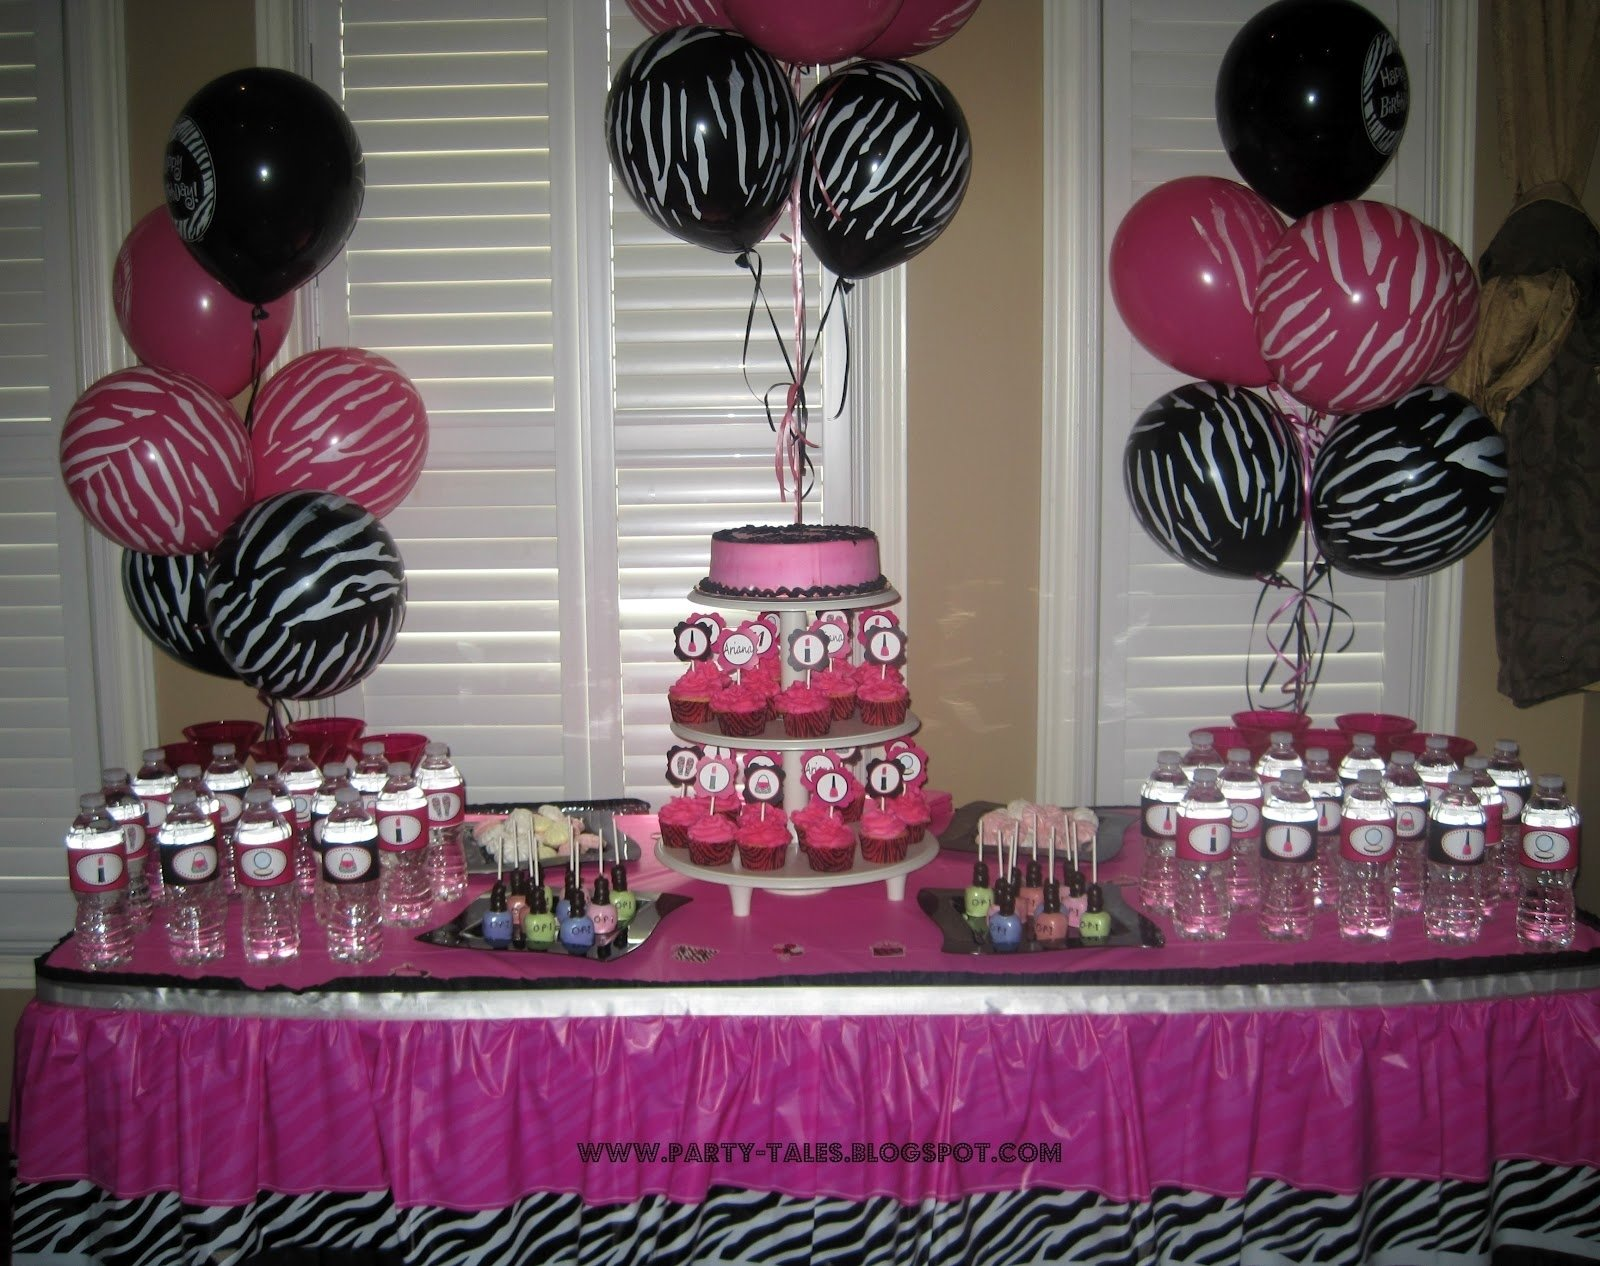 10 Famous Pink And Black Party Ideas party tales birthday party zebra print and hot pink diva spa 2 2020